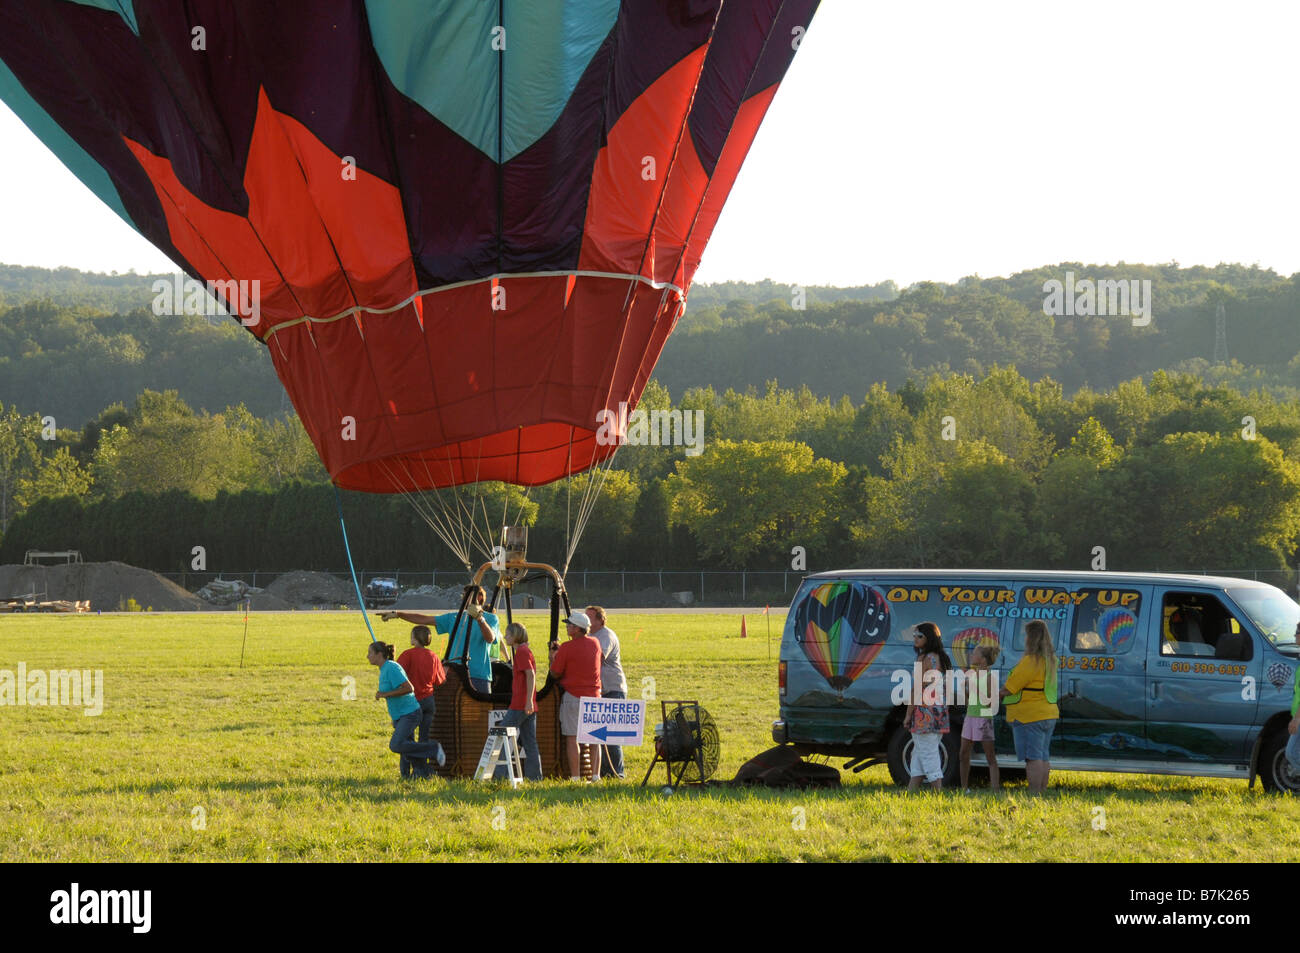 Hot air balloon being prepared for flight Stock Photo: 21931789 - Alamy